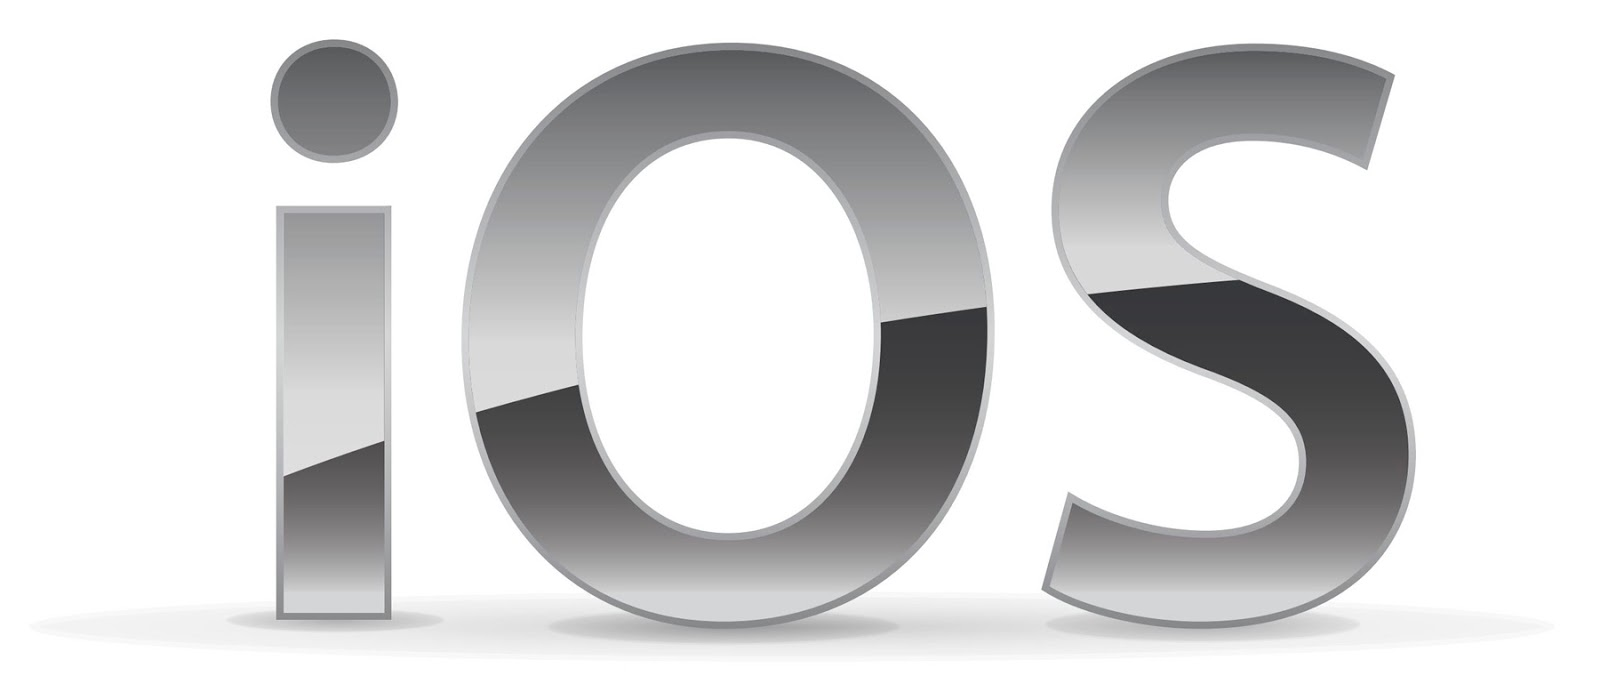 Apple Upgrade their  iOS Into 12.1.3 And watchOS Into 5.1.3